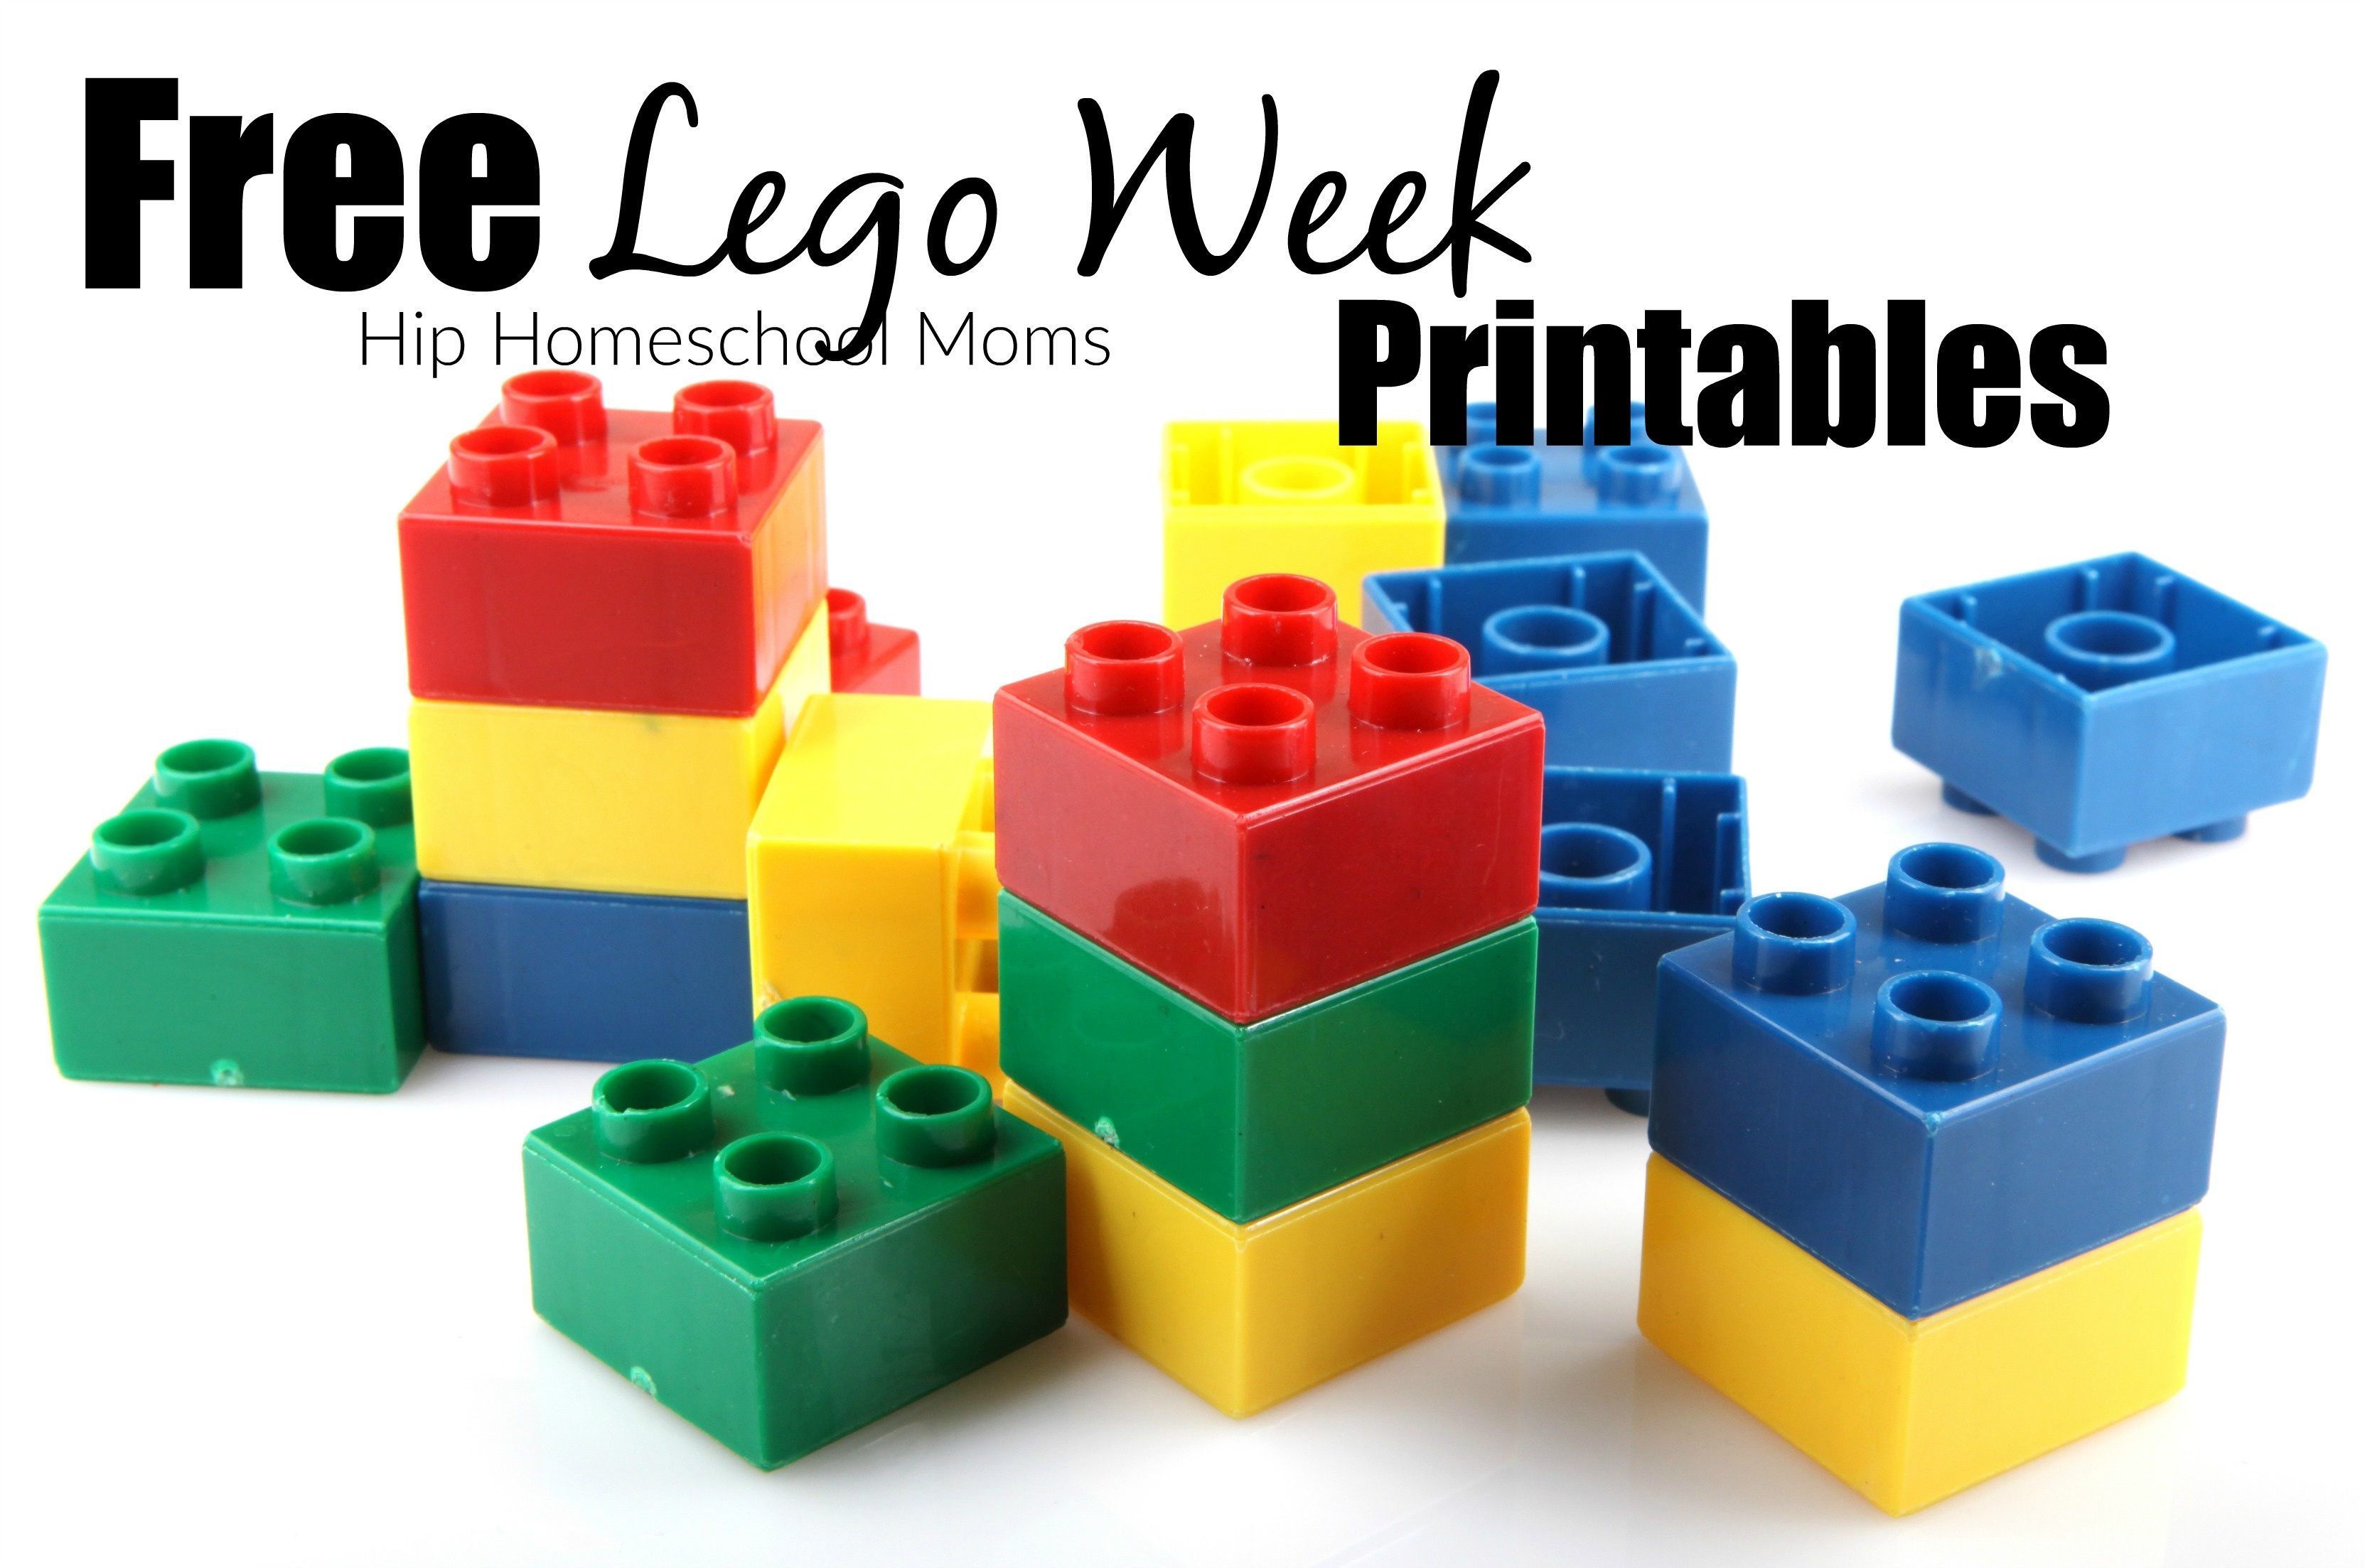 Lego Week Free Printables | Hip Homeschool Moms - Free Lego Printables